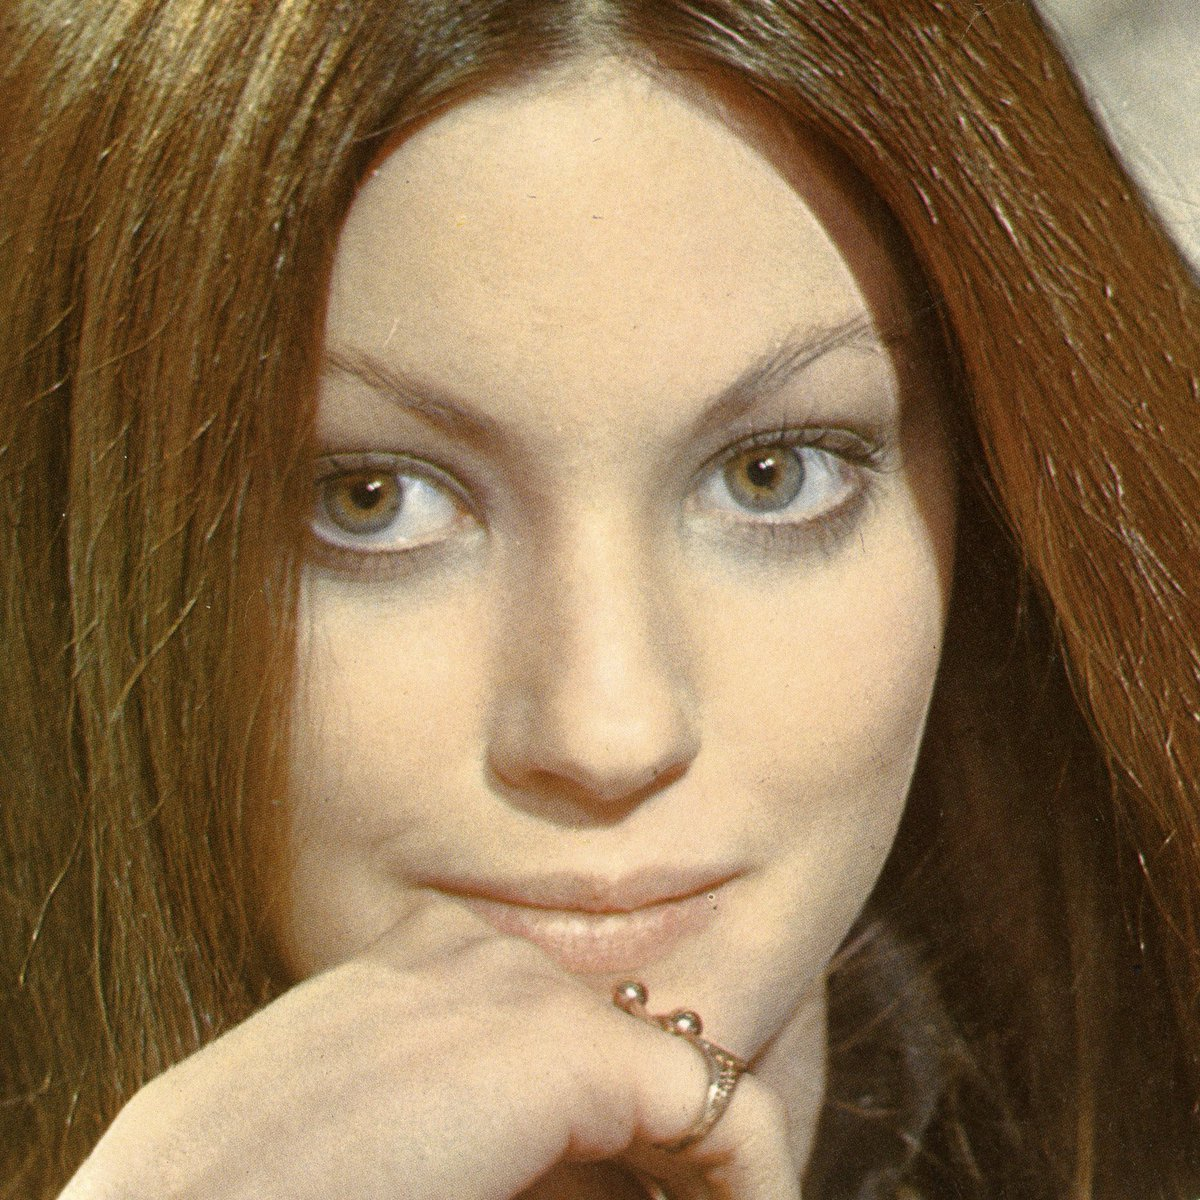 One of #LynneFrederick's most prominent trademarks was her enchanting and expressive #greeneyes eyes that might have even surpassed those of Bette Davis  #EnglishRose #LynneFrederickFanPage #celebrities #vintage #movies #photography #beautiful #1970s #angelfacepic.twitter.com/hCXZVk7HYz